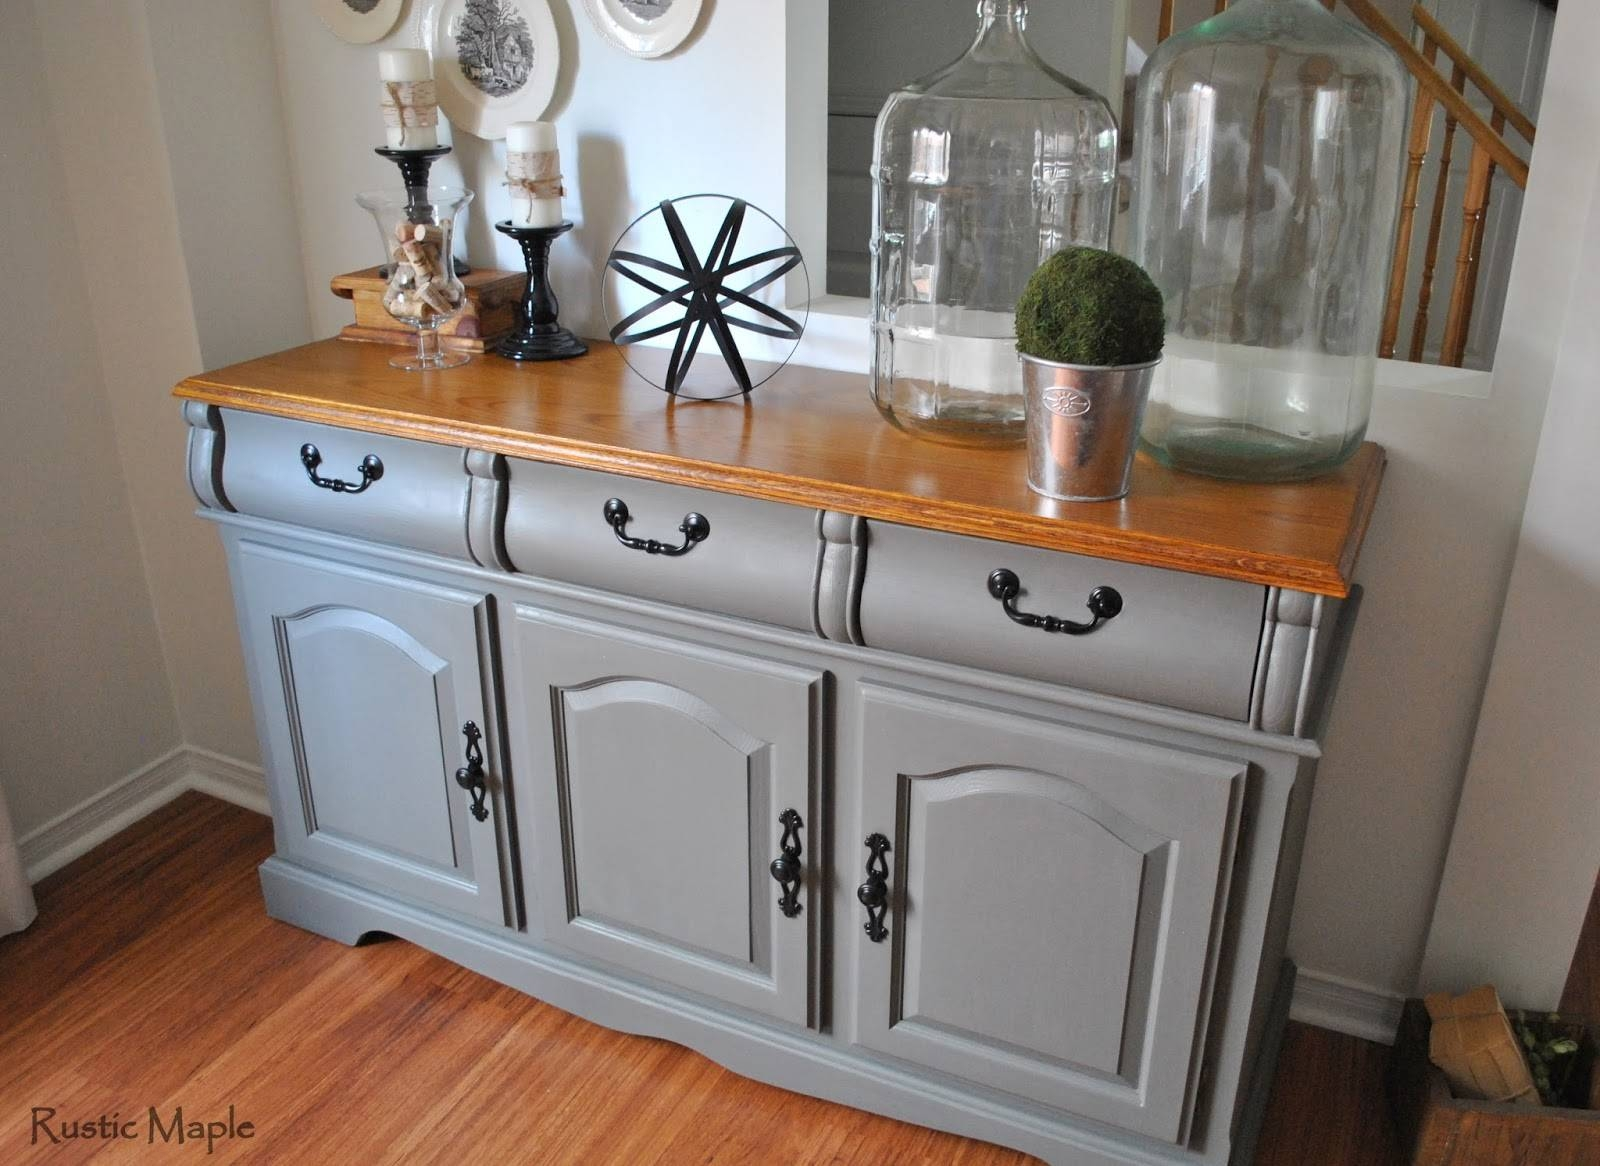 Rustic Maple: Painted Buffet In Country Chic Paint's Cobblestone Within Grey Painted Sideboards (View 7 of 15)